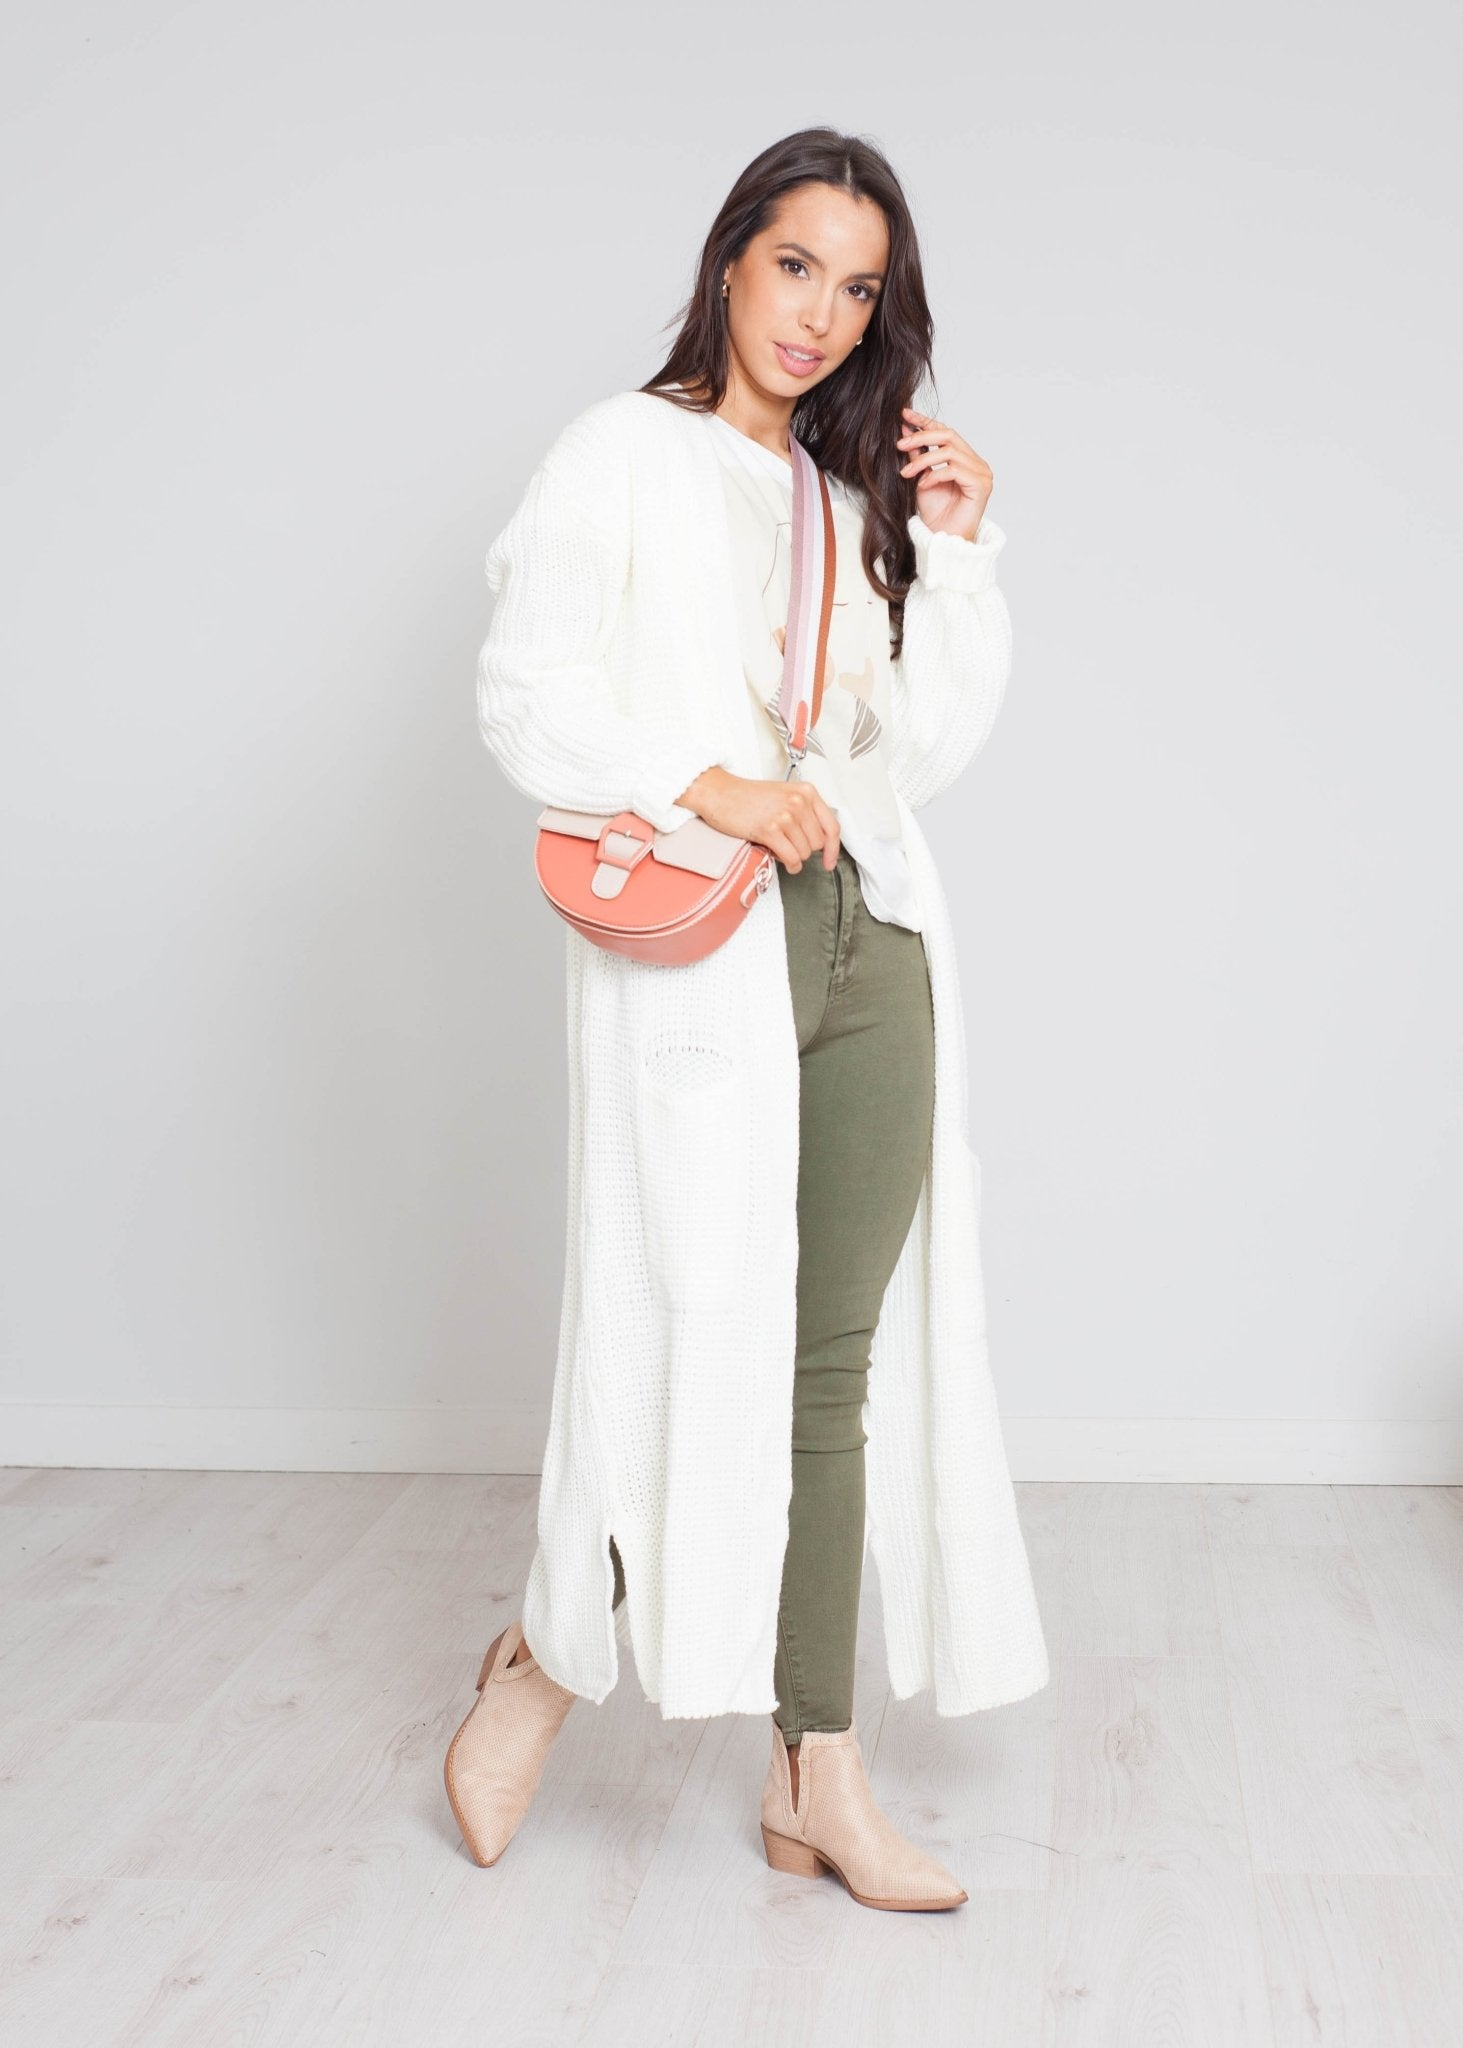 Freya Longline Knit Cardigan In Cream - The Walk in Wardrobe